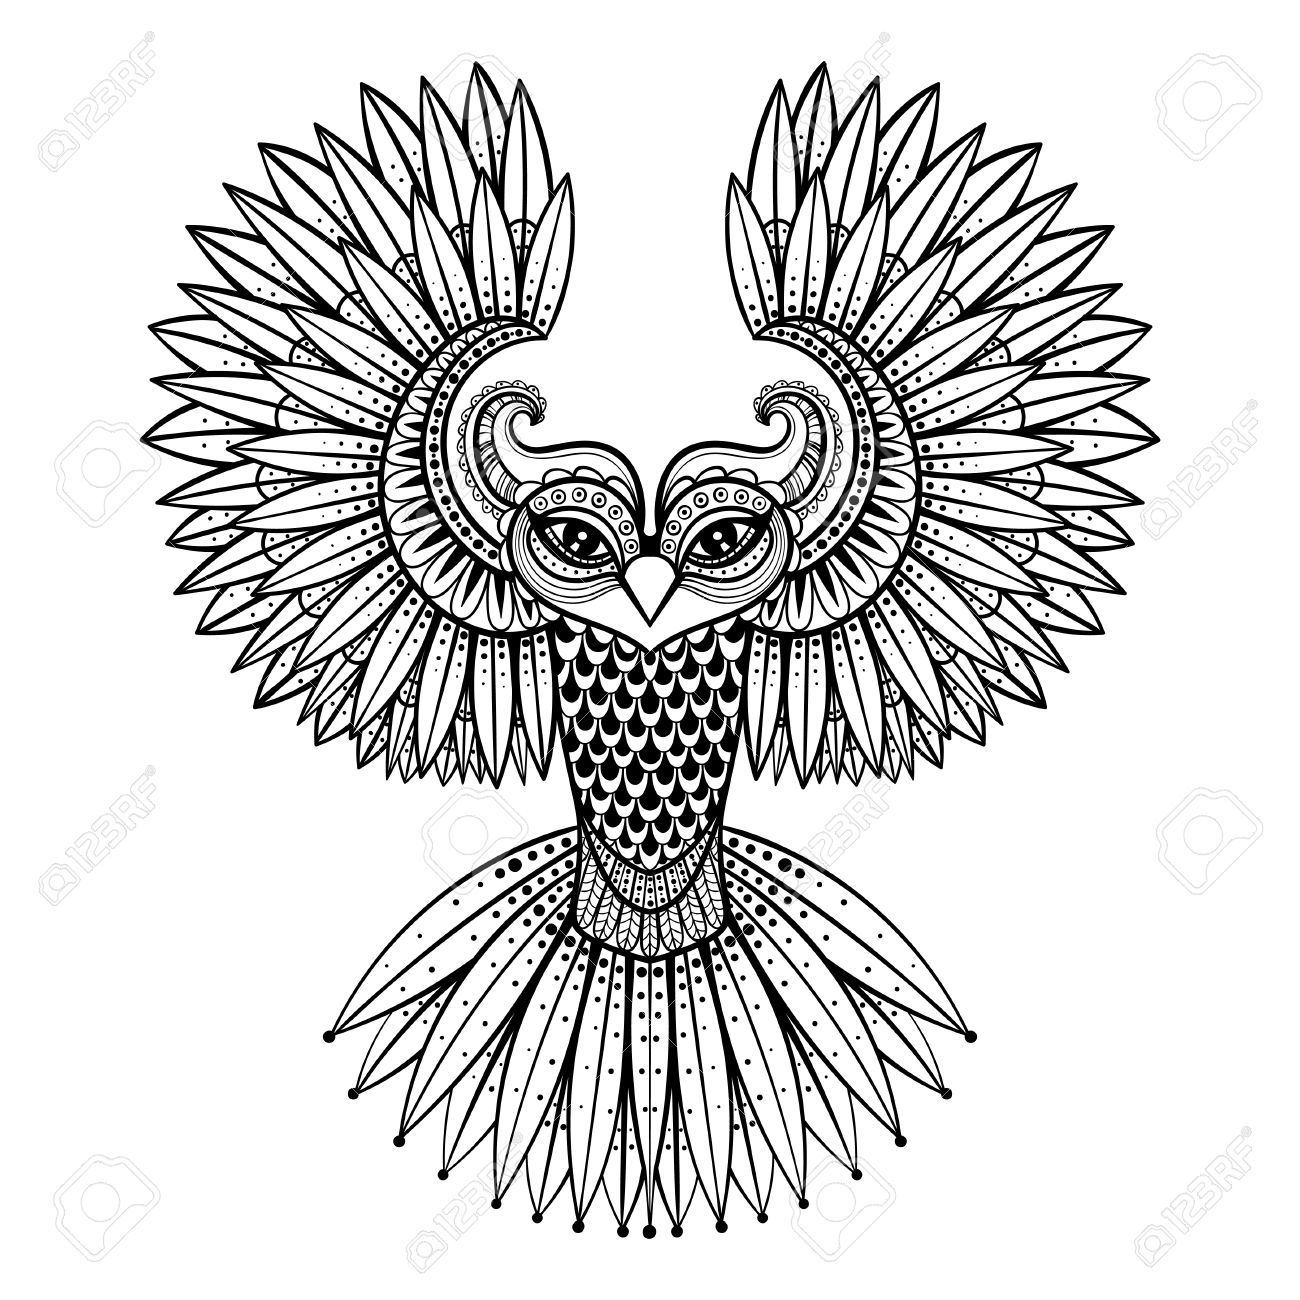 Vector ornamental Owl, ethnic zentangled mascot, amulet, mask of bird, patterned animal for adult anti stress coloring pages. Hand drawn totem illustration isolated on background. - 51456691